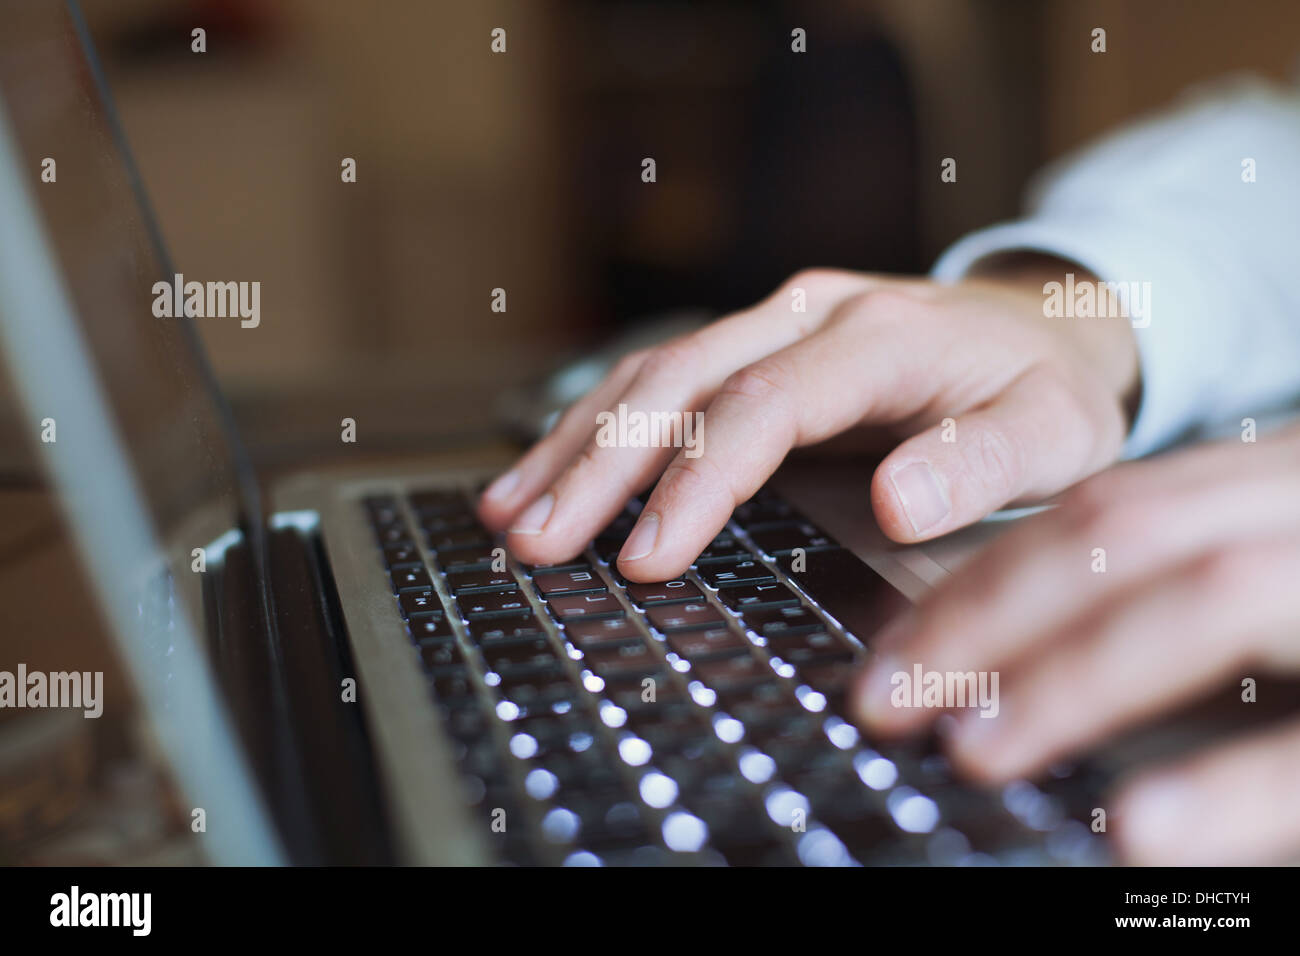 work in office - Stock Image